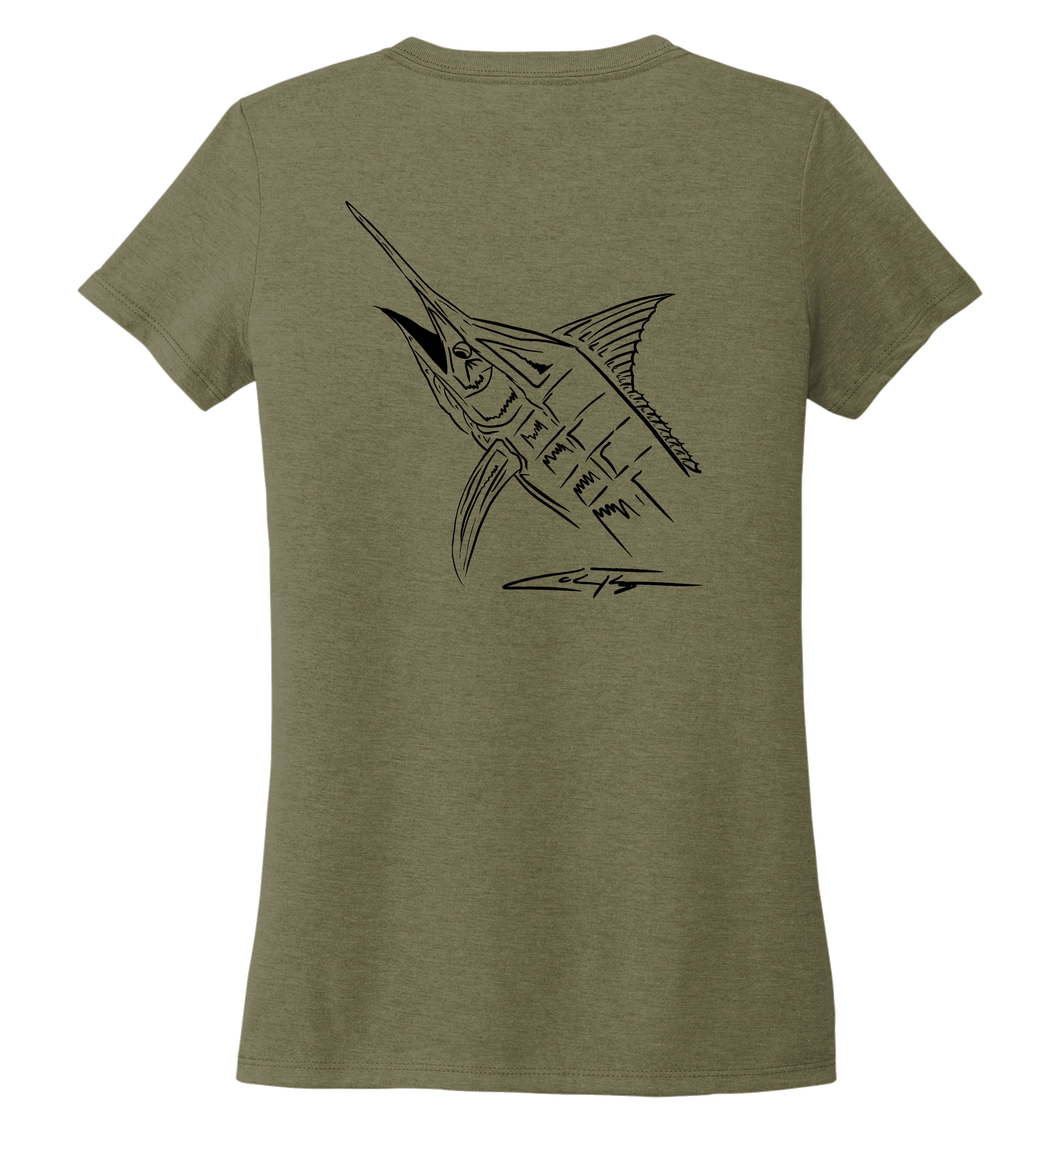 Colin Thompson, Marlin, Women's V-neck T-shirt in Earthy Green